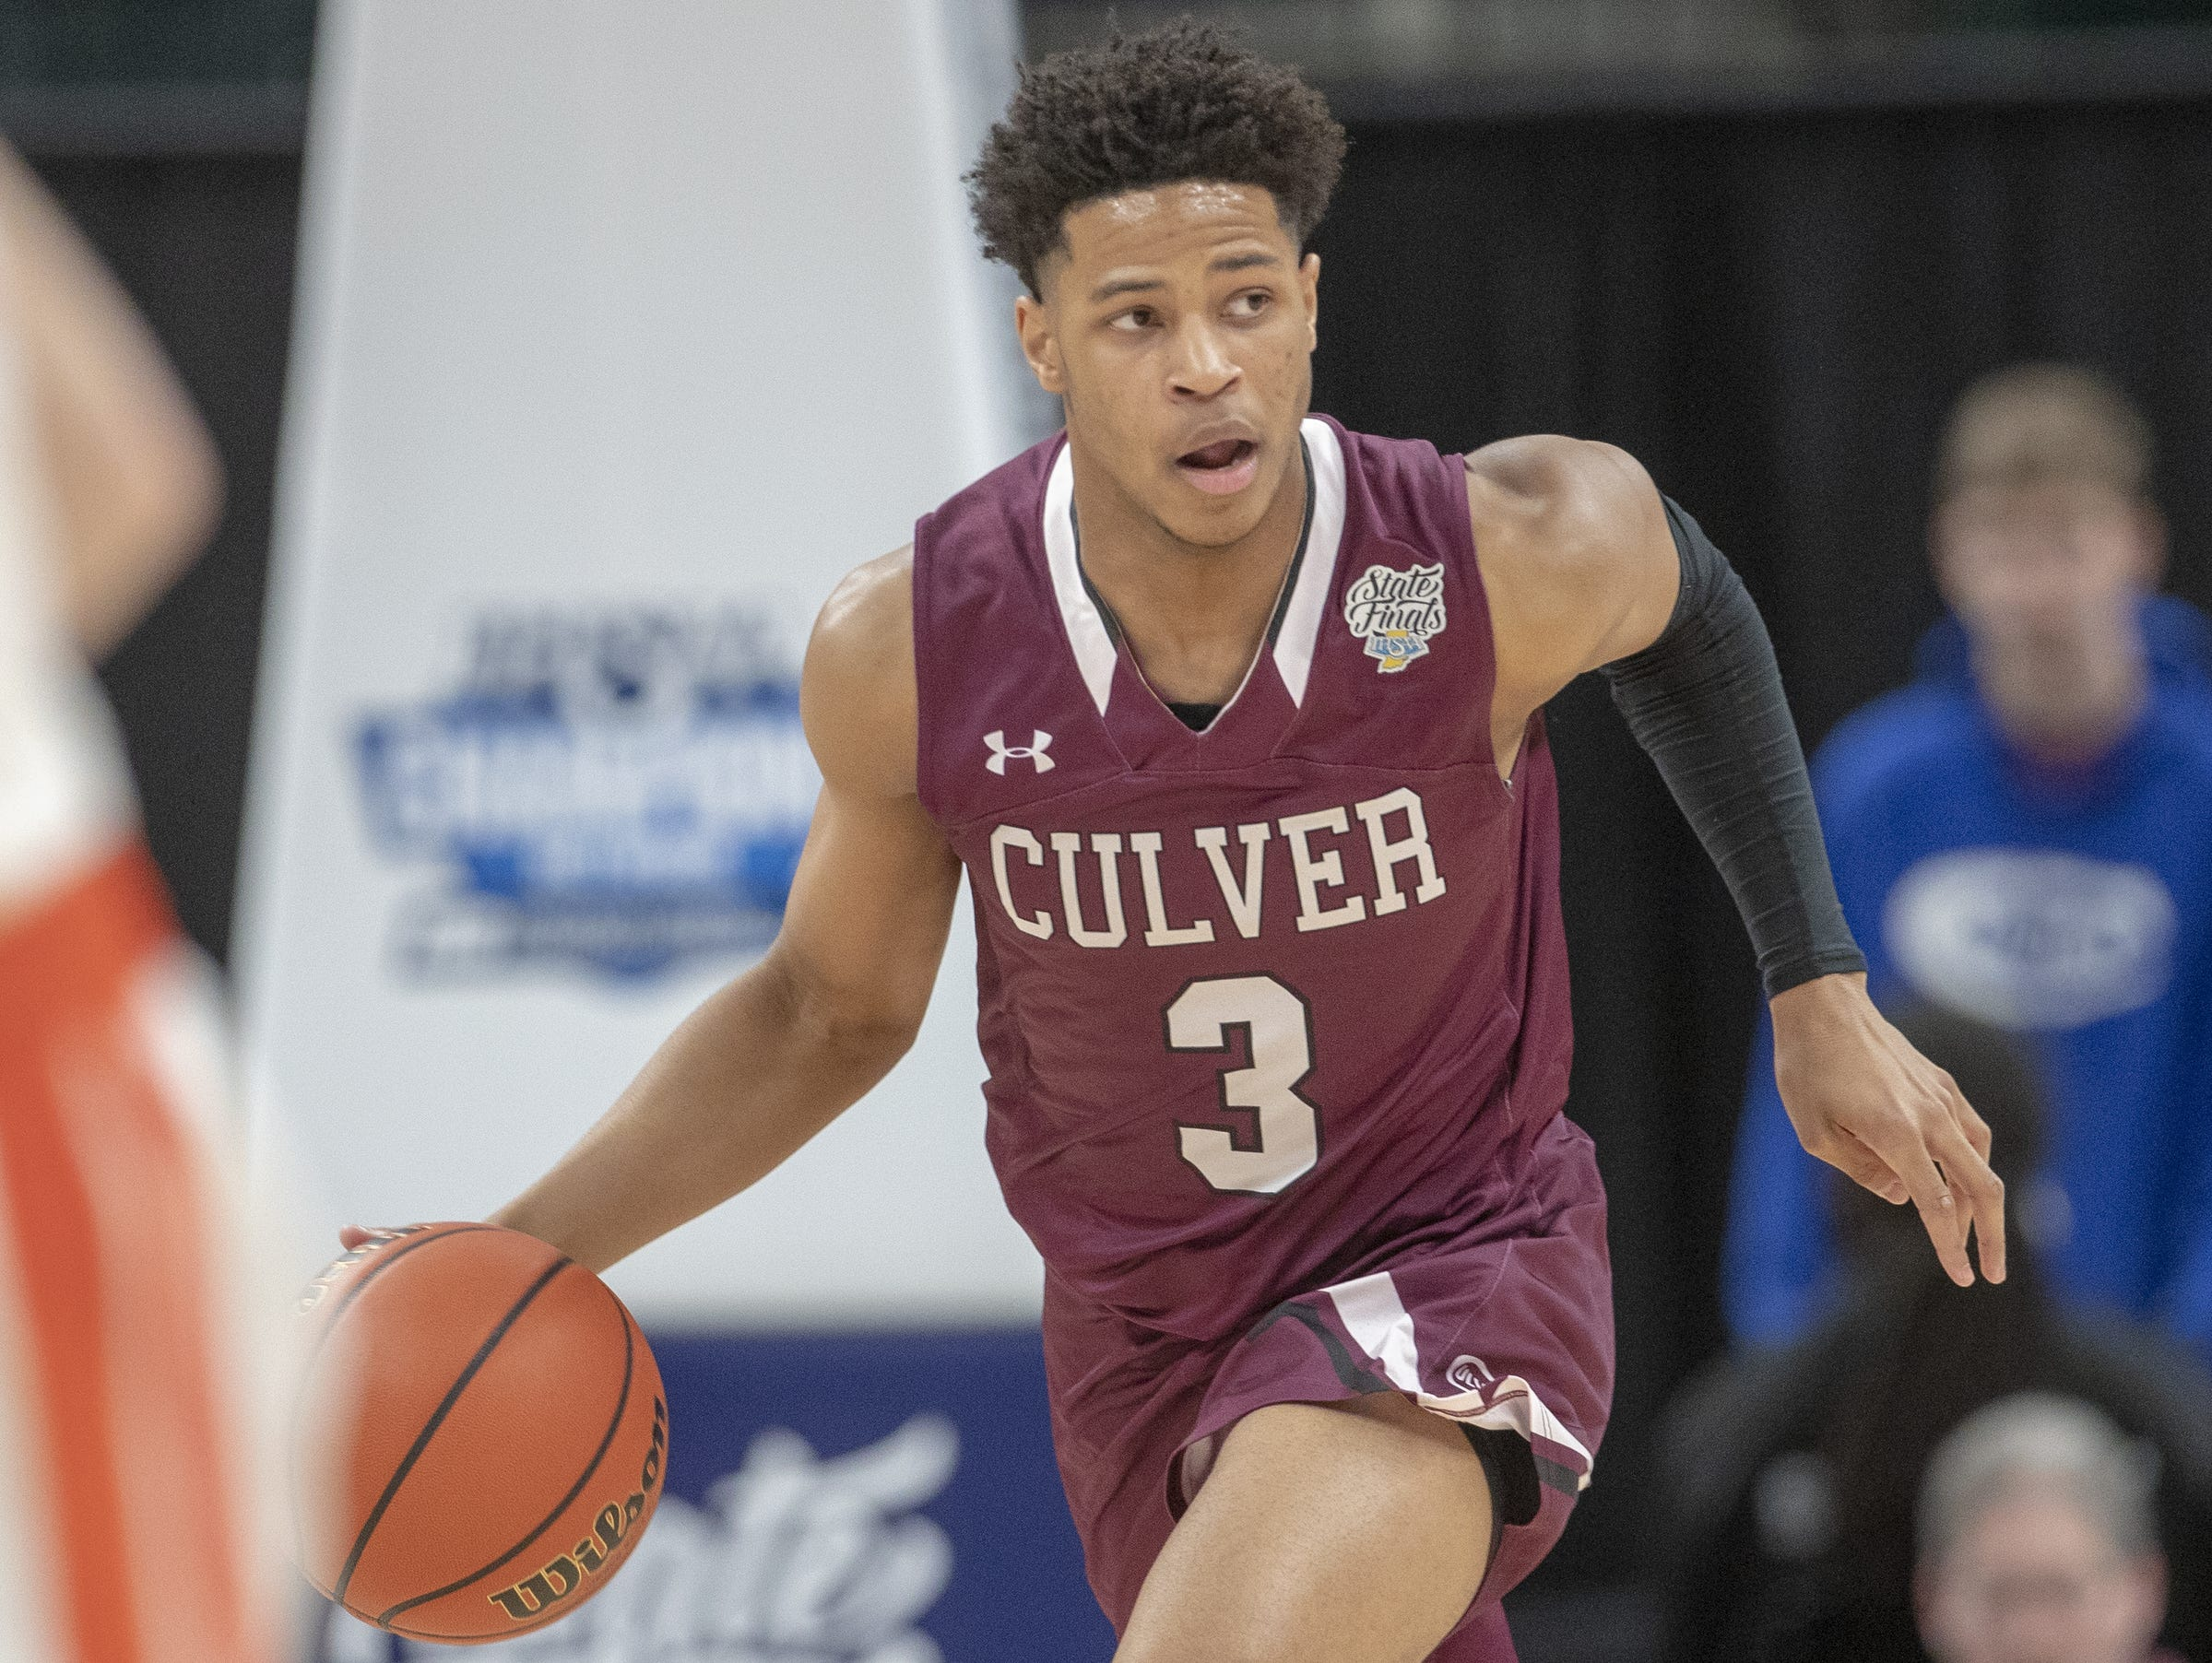 Ethan Brittain-Watts, of Culver Academies vs. Silver Creek Dragons in the Class 3S Boys Basketball State Final, Bankers Life Fieldhouse, Indianapolis, Saturday, March 23, 2019. Silver Creek won 52-49.